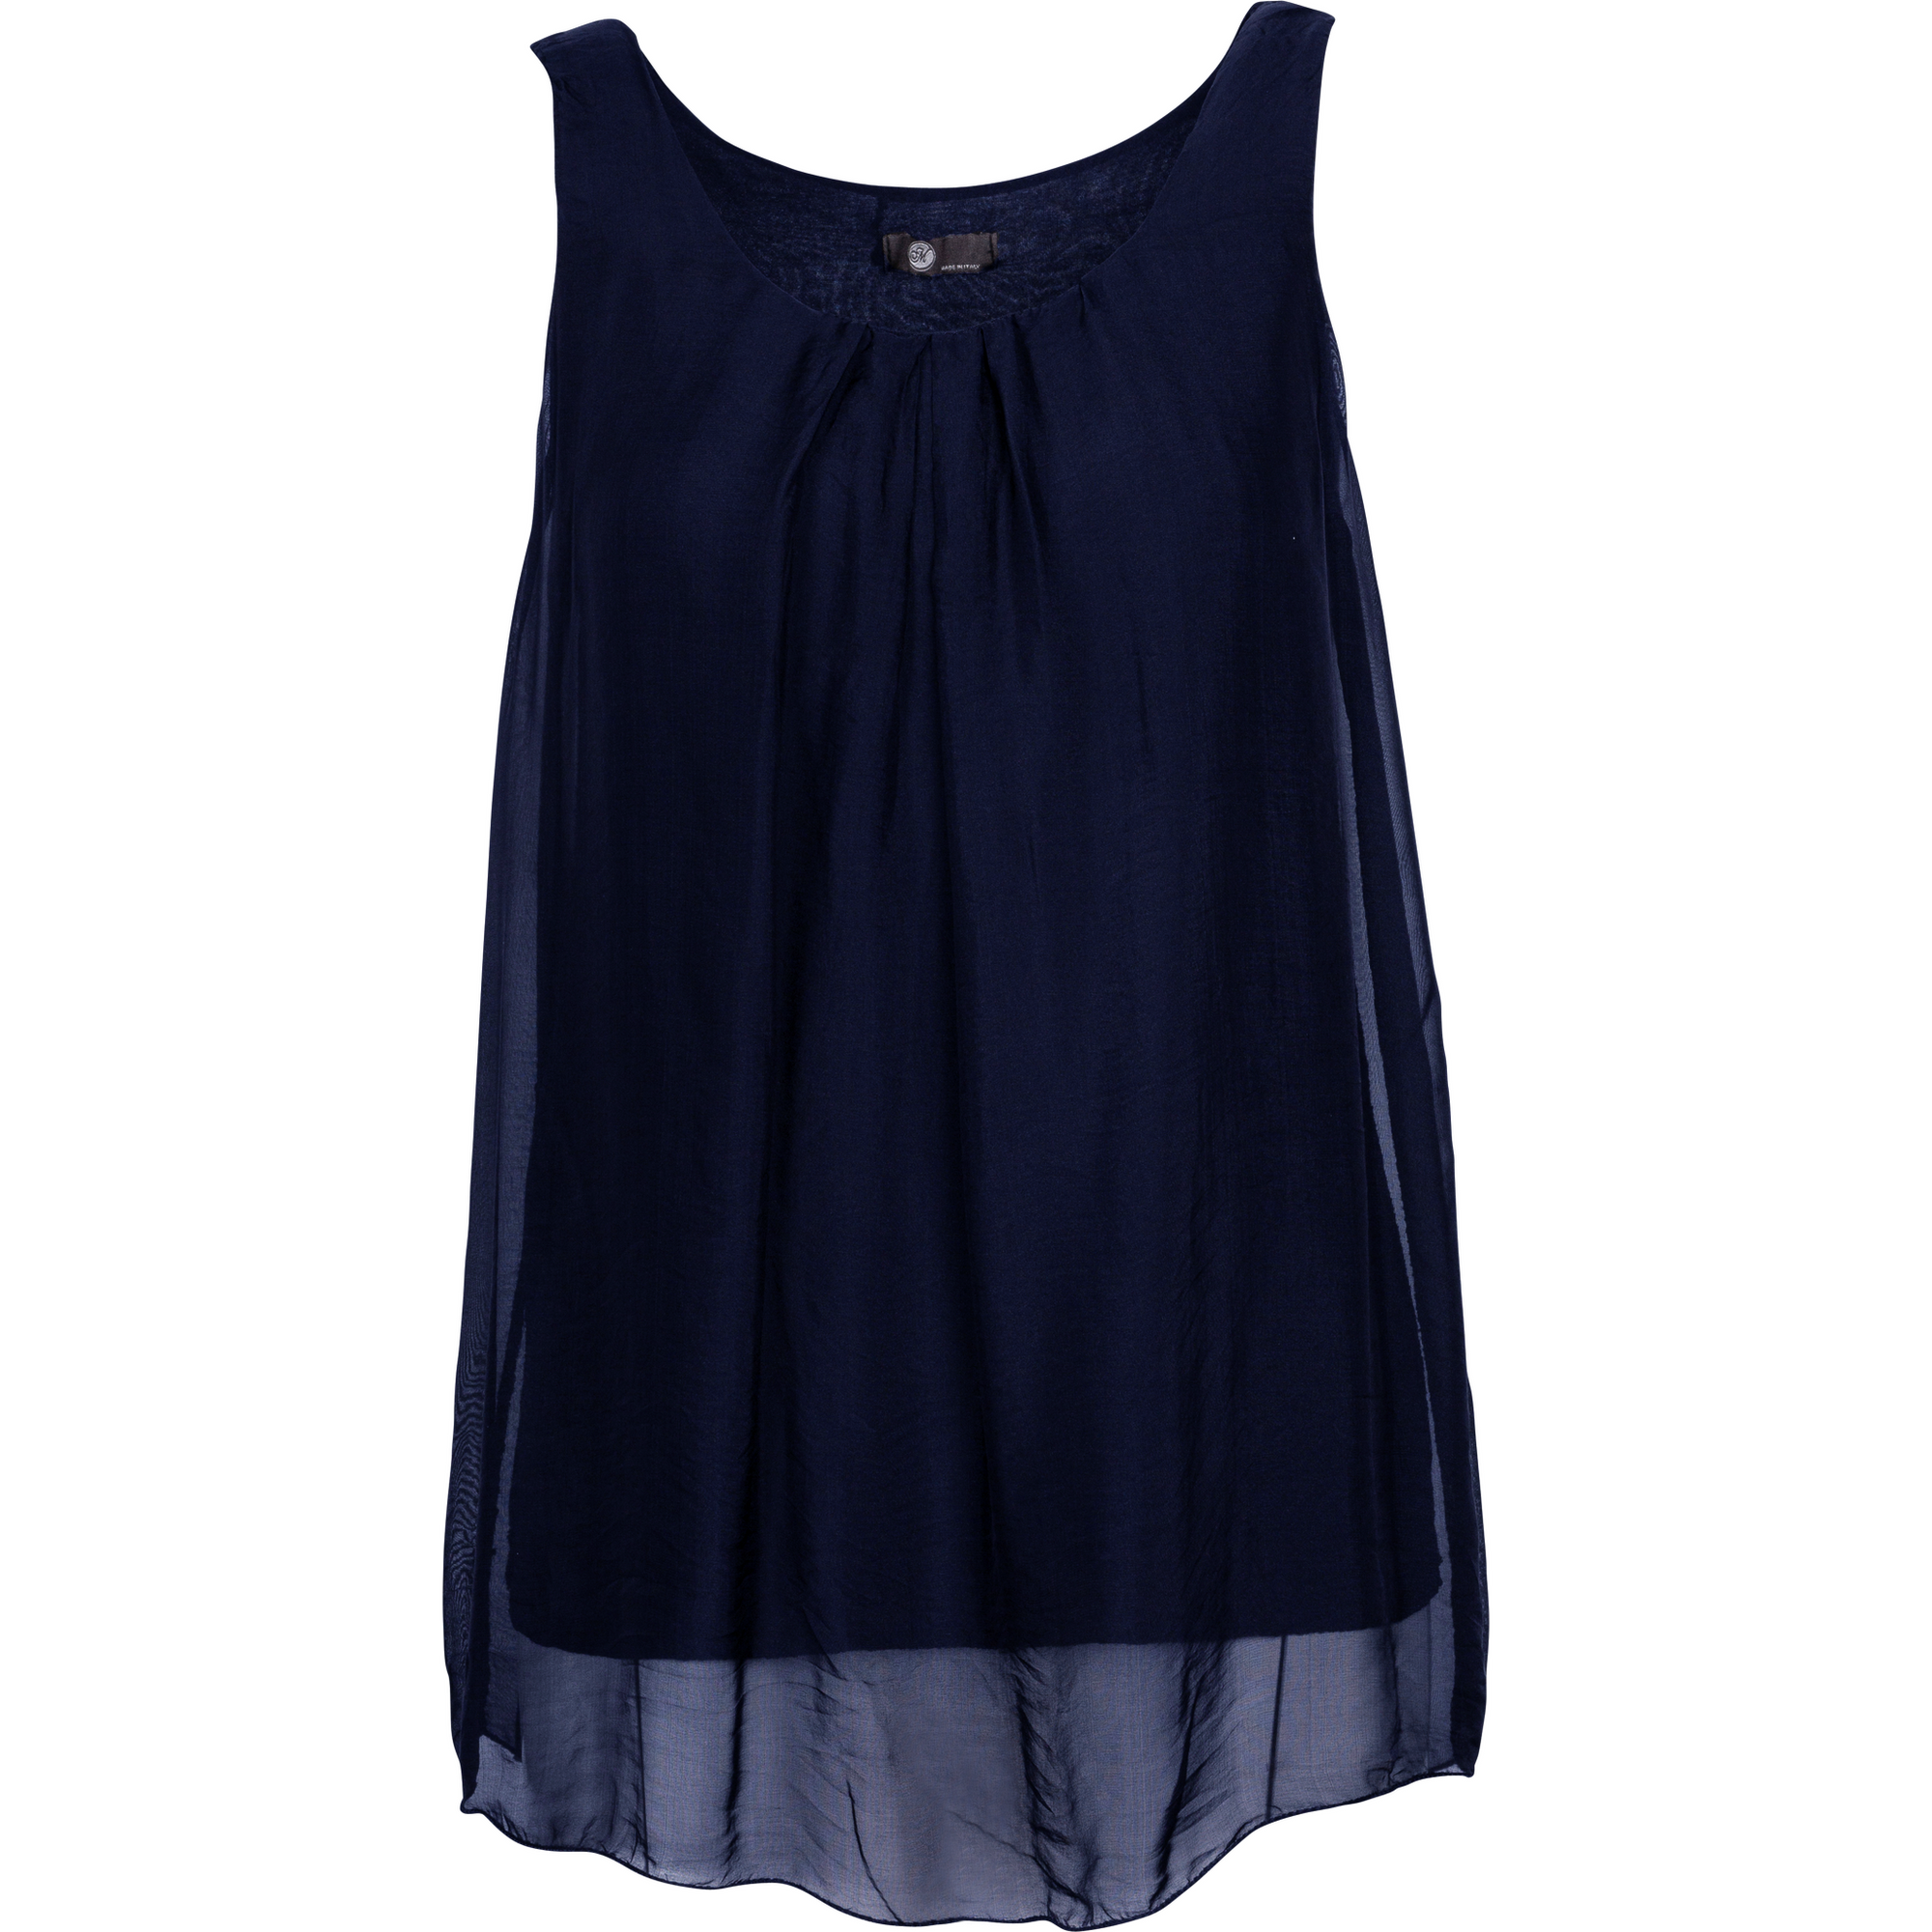 M Made In Italy Woven Sleeveless Top in Navy